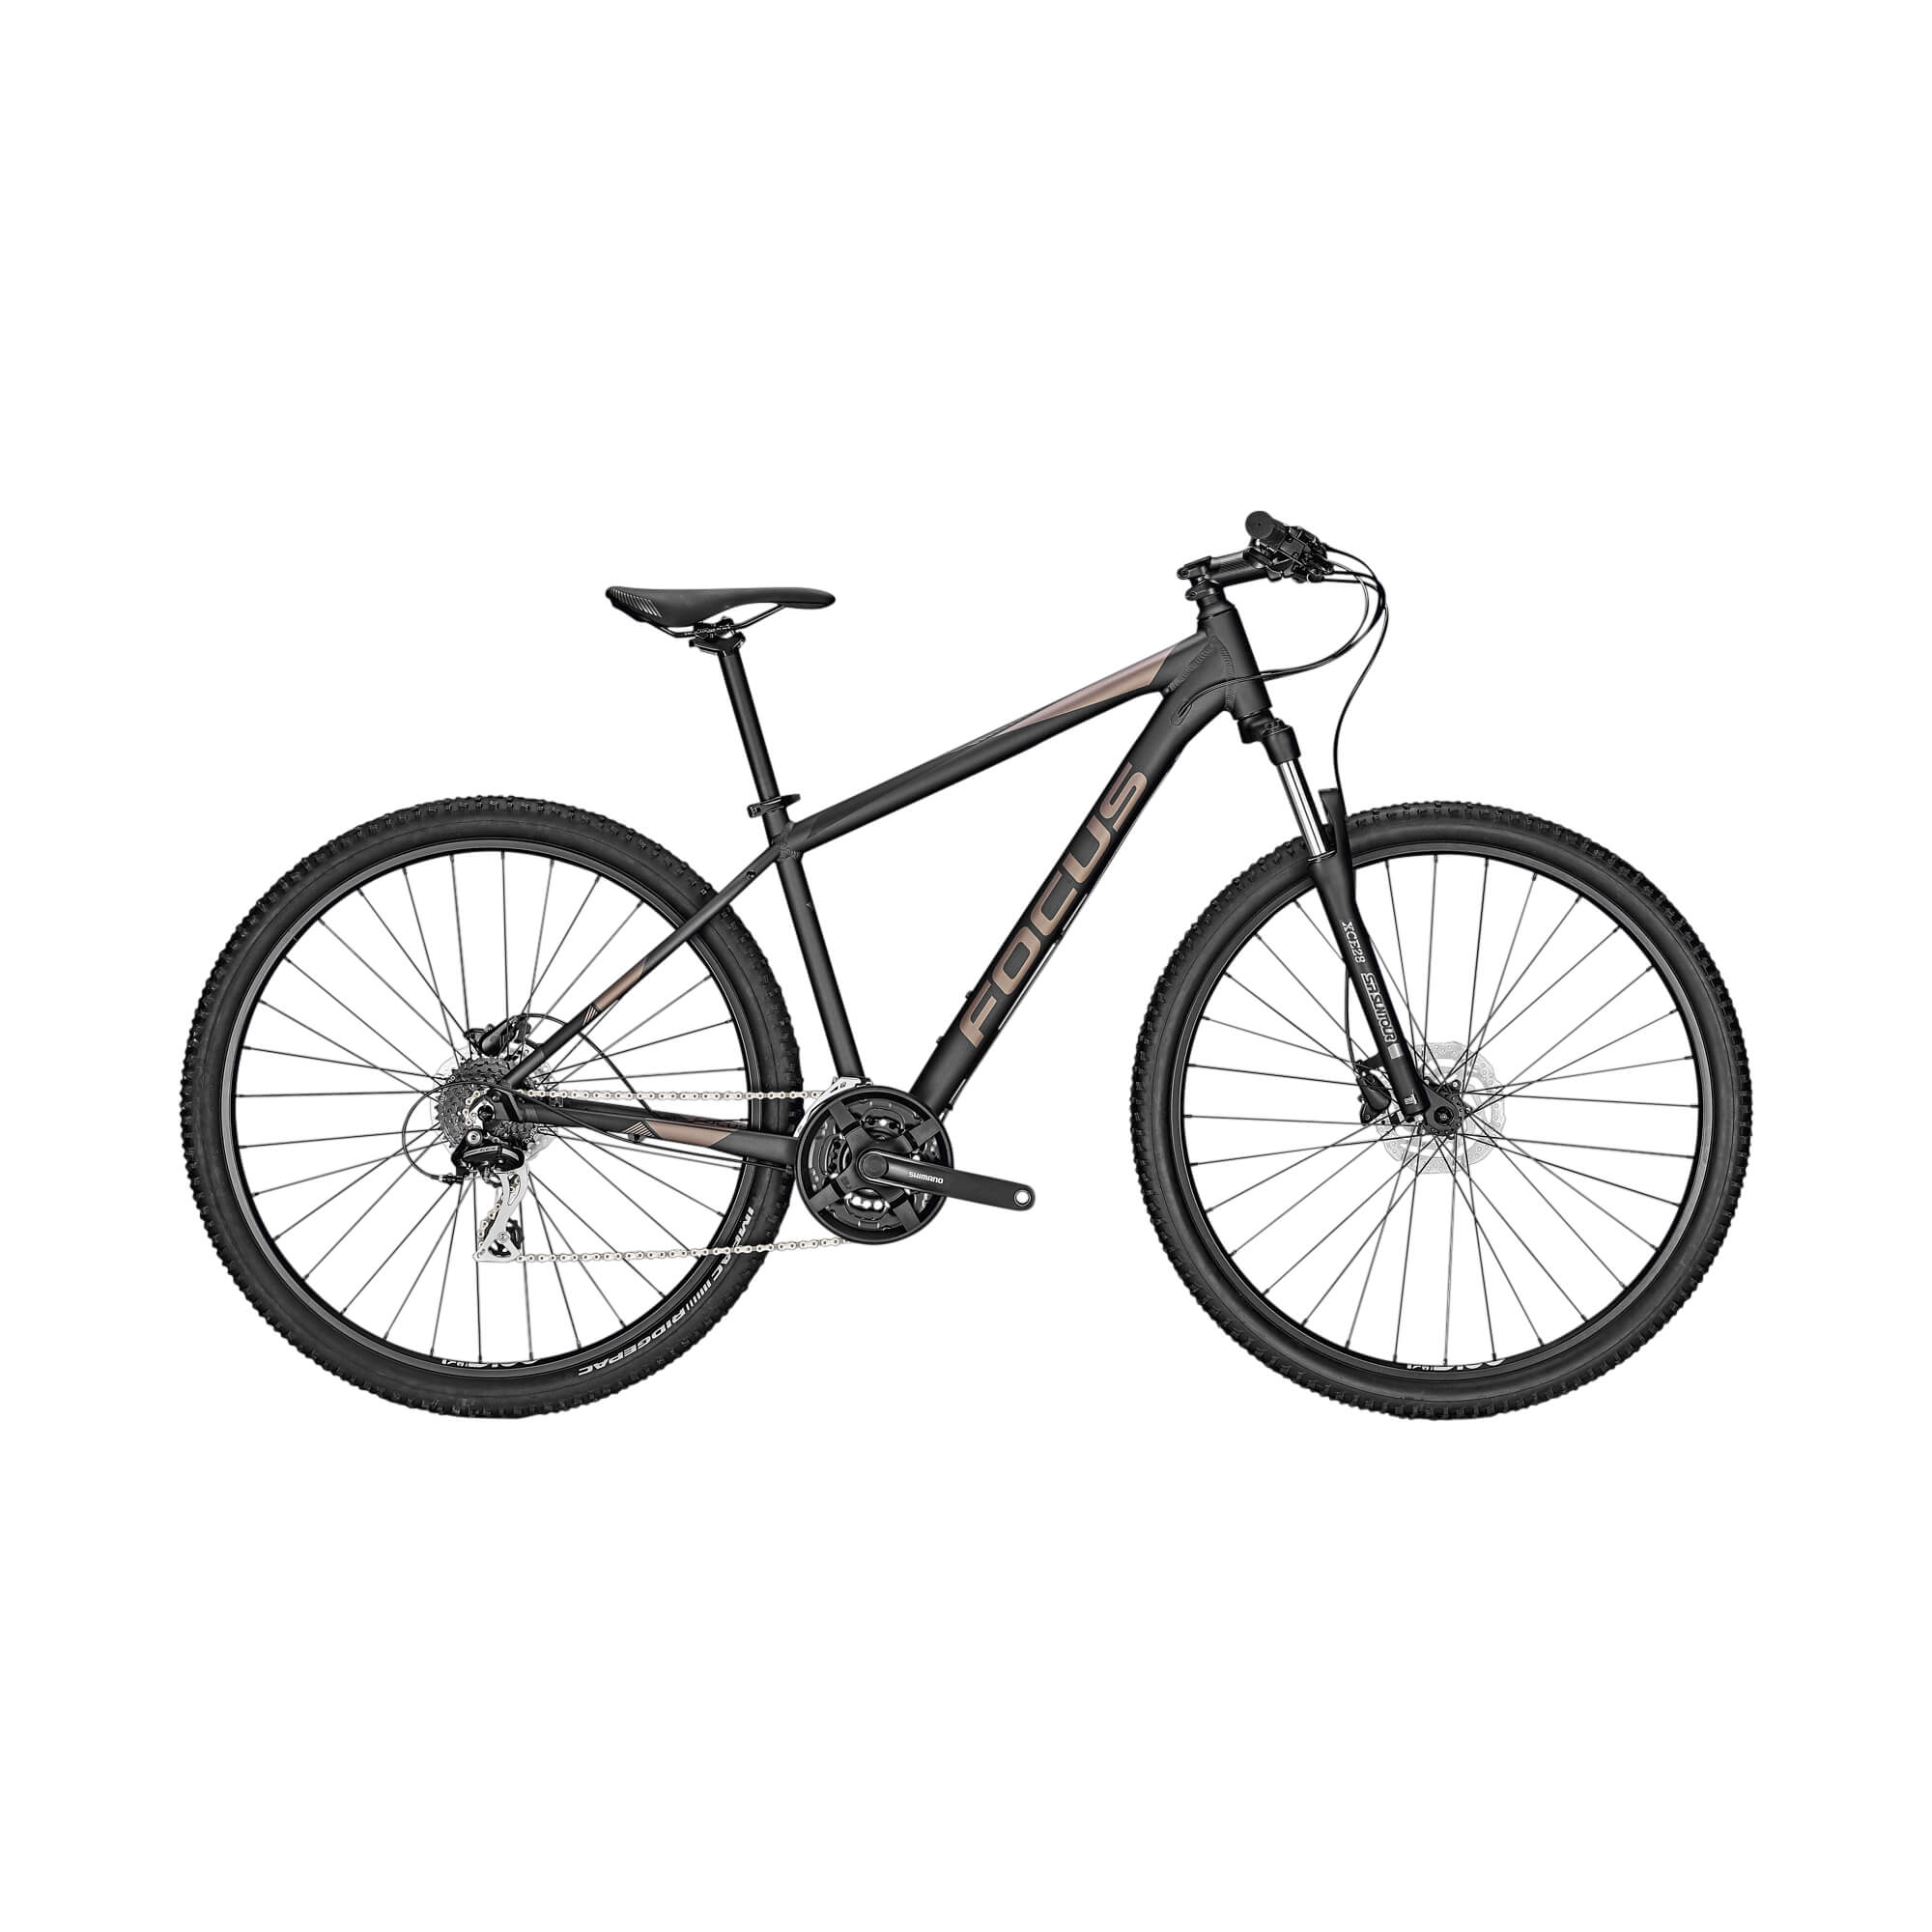 Bicicleta MTB Whistler 3.5 imagine